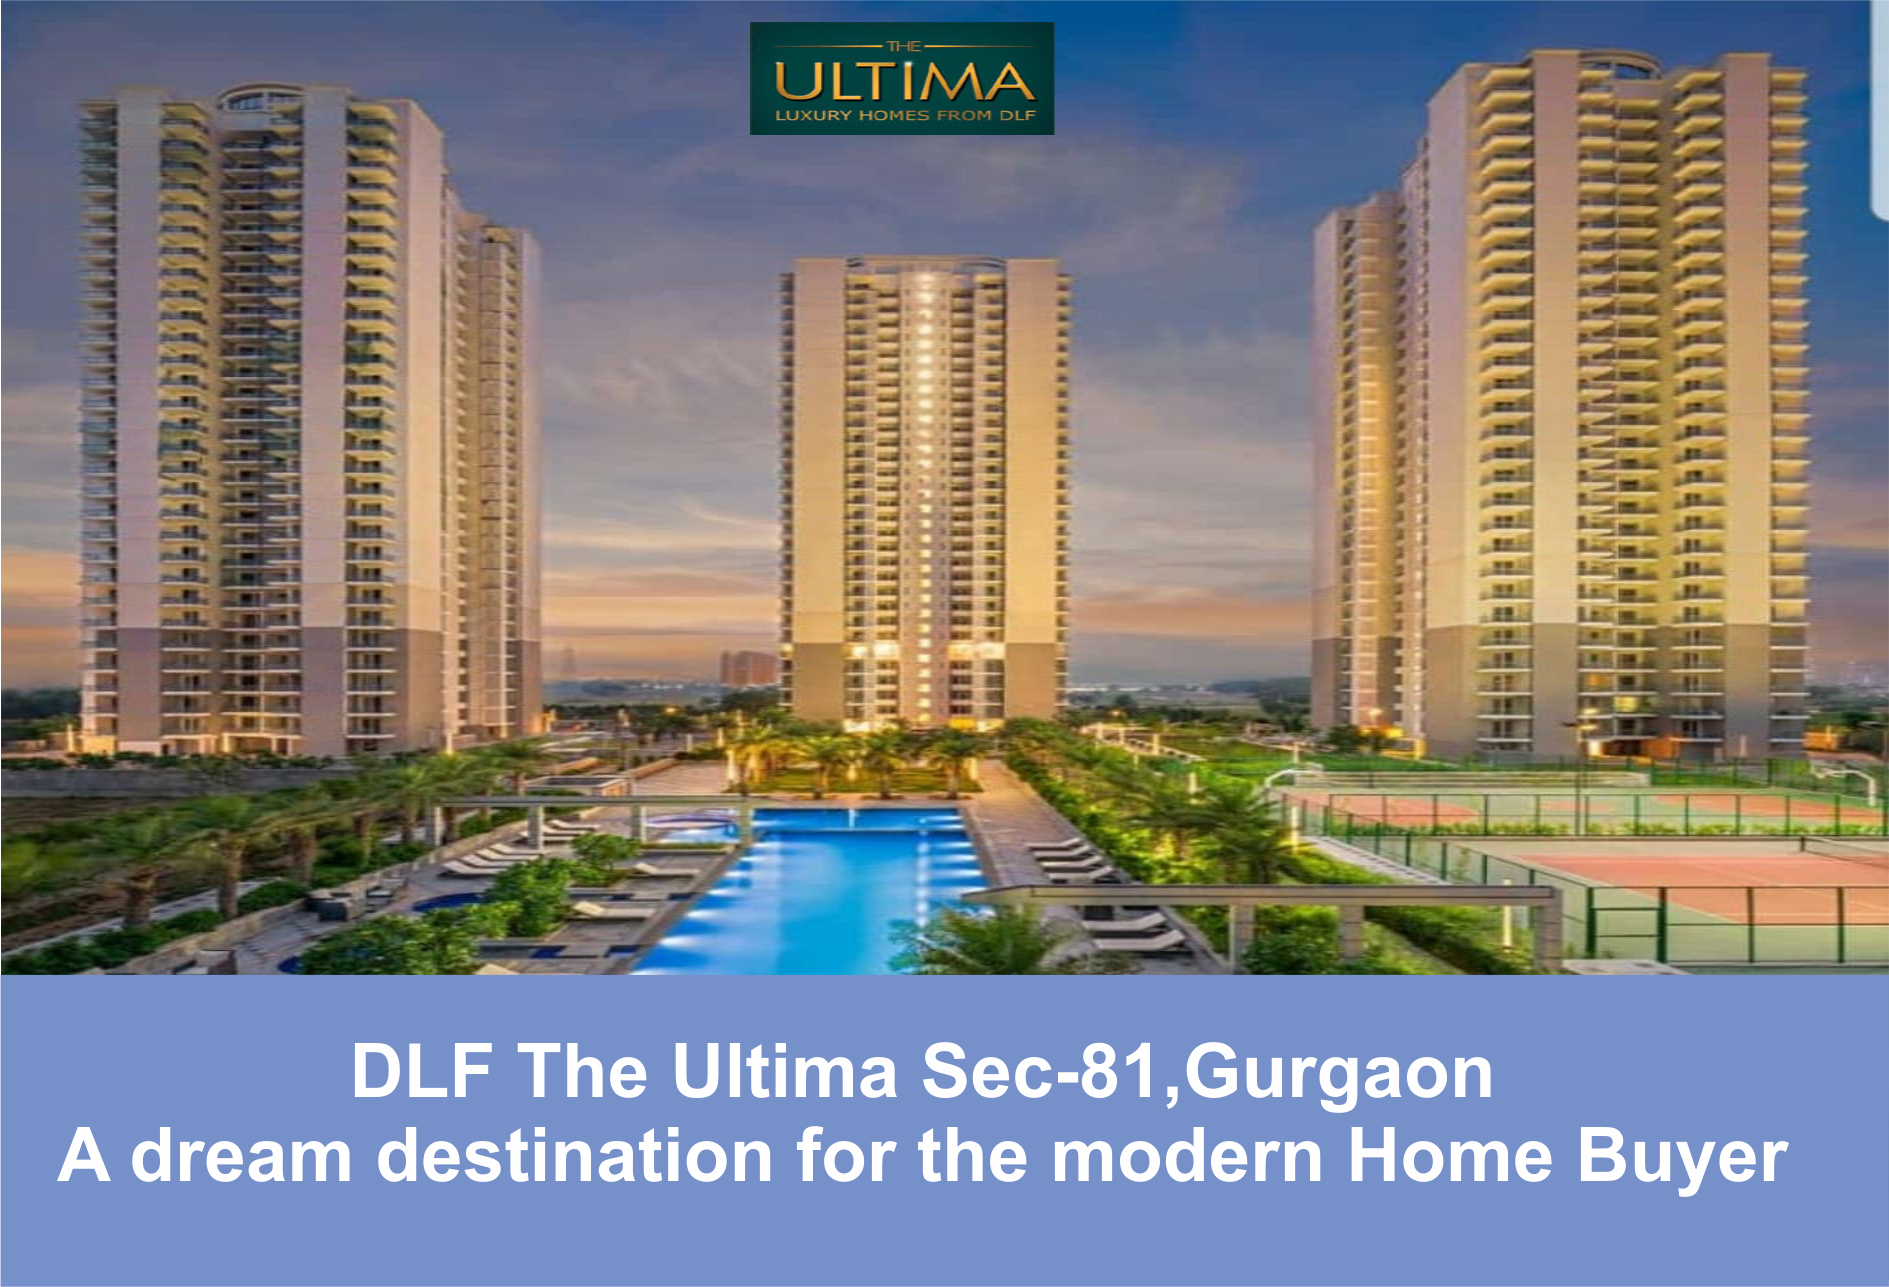 DLF THE ULTIMA  SECTOR- 81, GURGAON